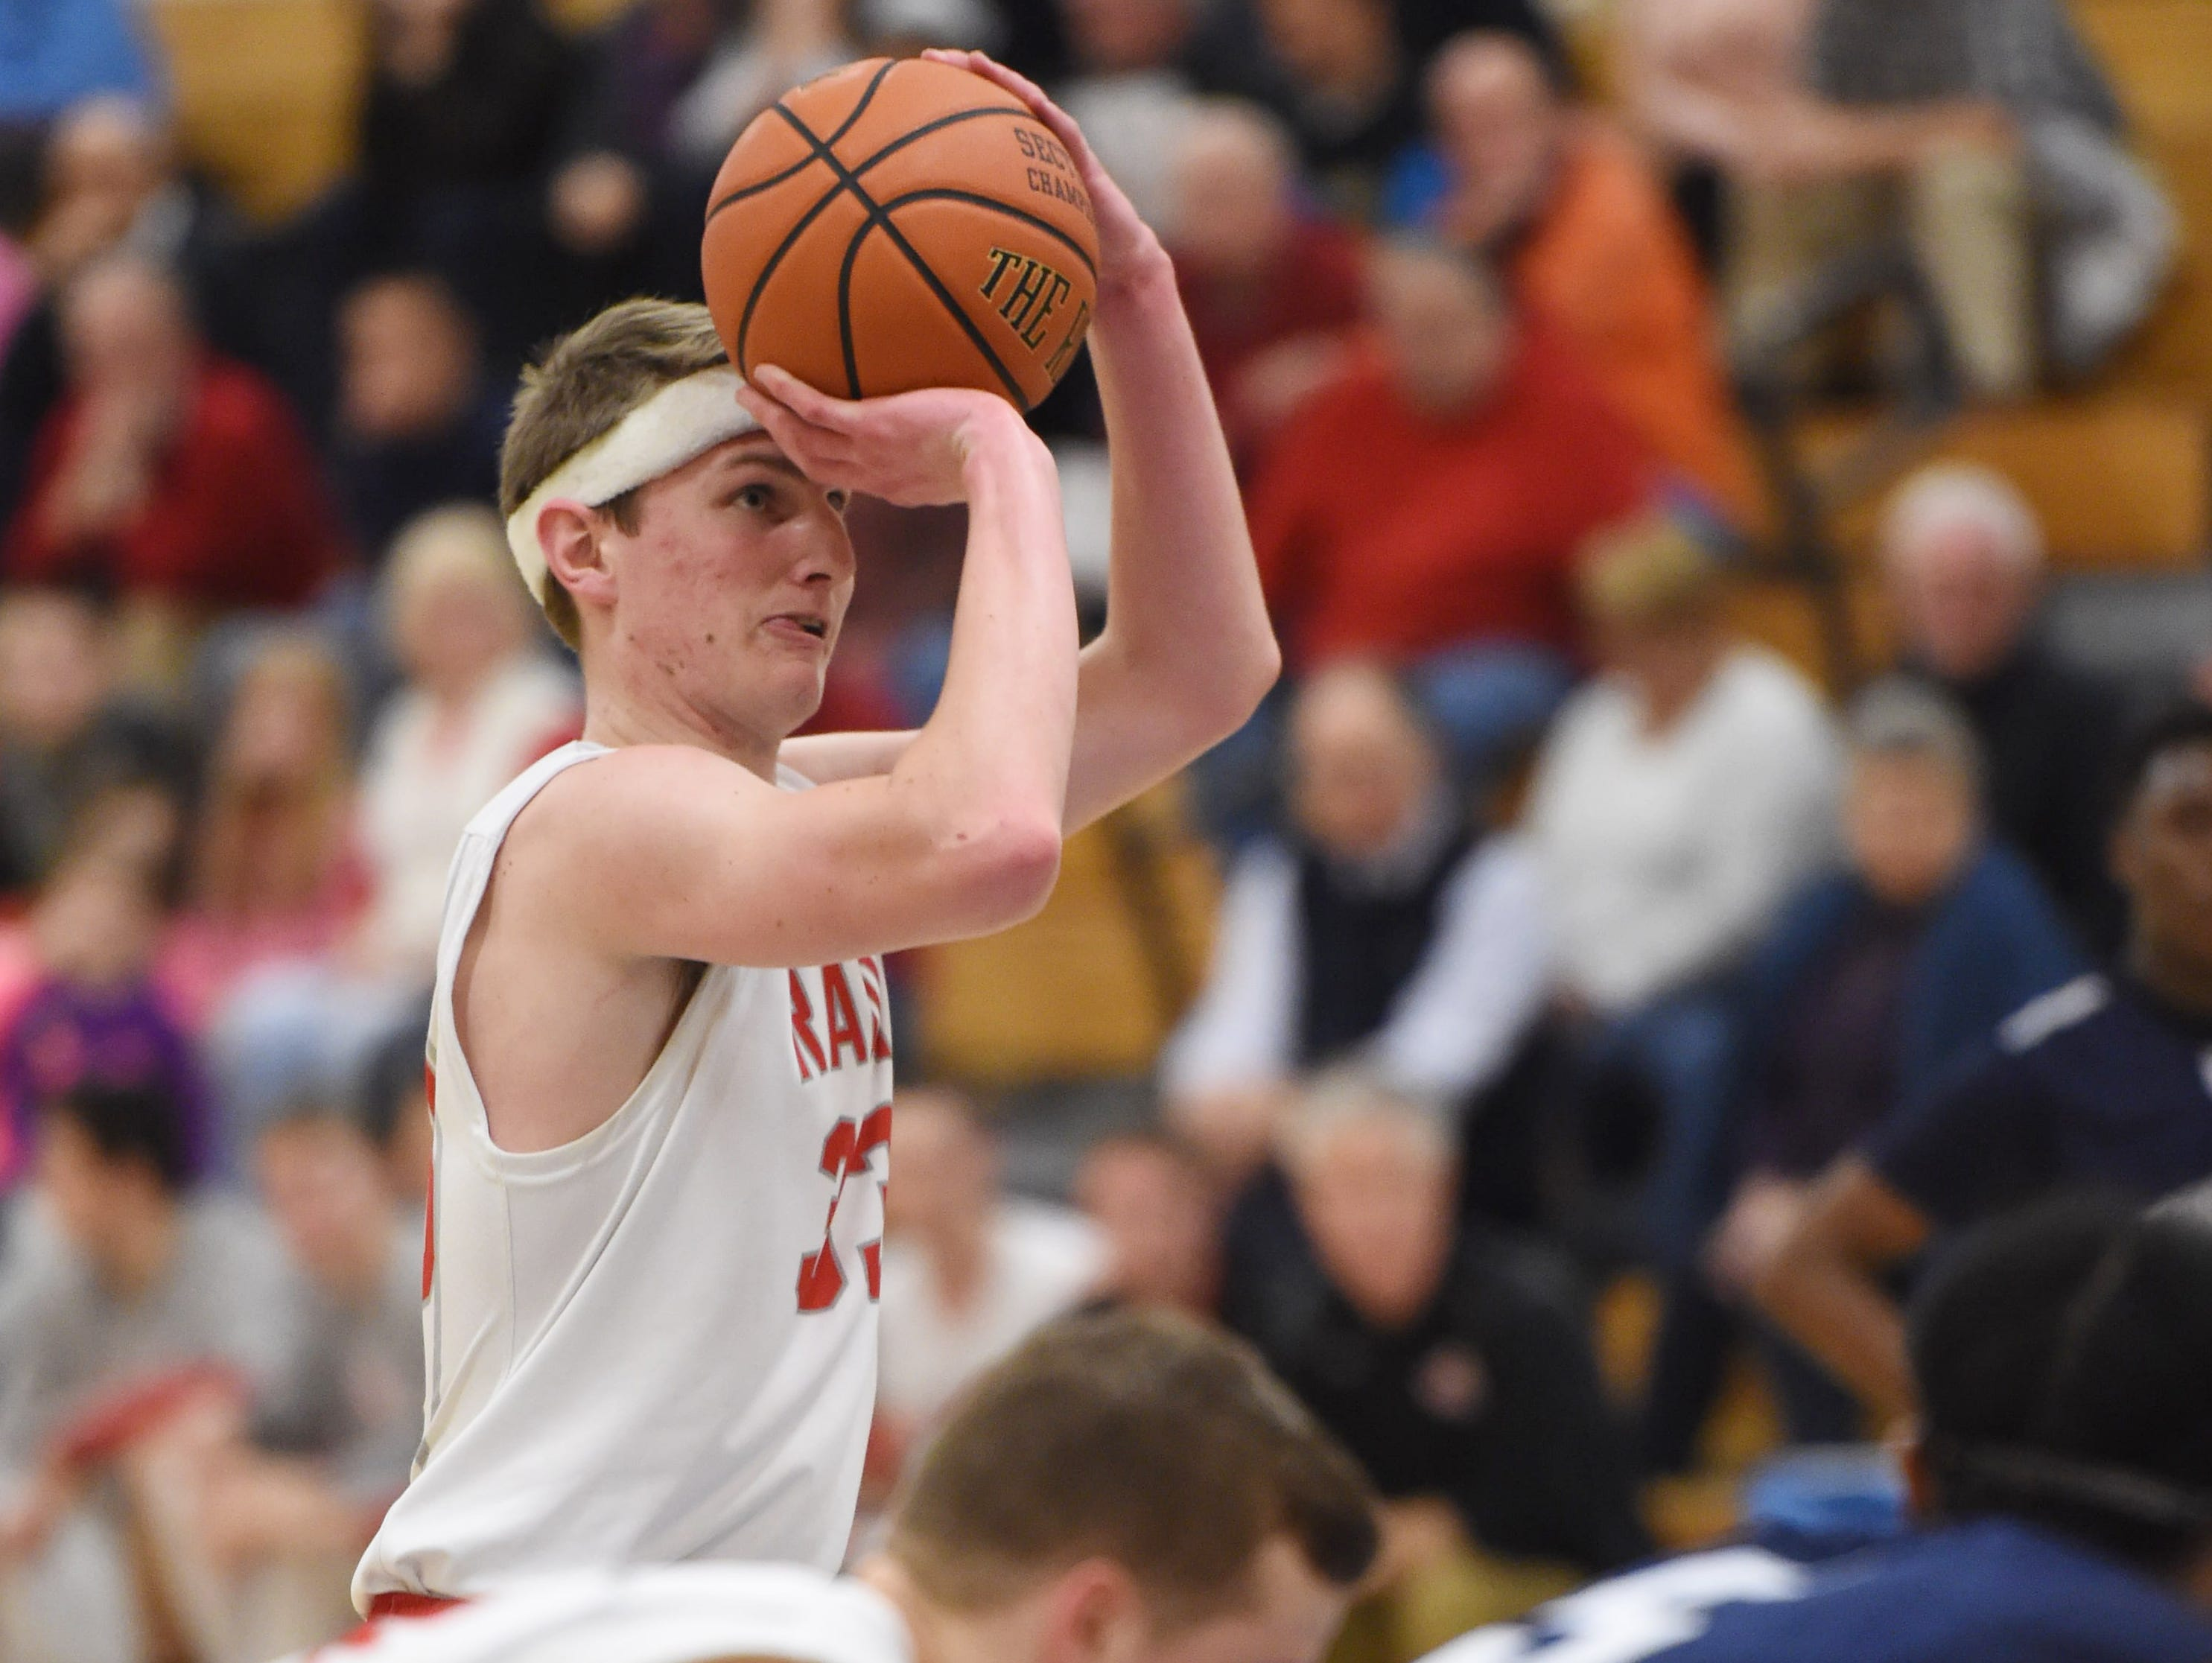 Red Hook High School's Colin Bemis takes a free throw against Poughkeepsie in the Mid-Hudson Athletic League semifinals on Feb. 17 at SUNY Ulster.